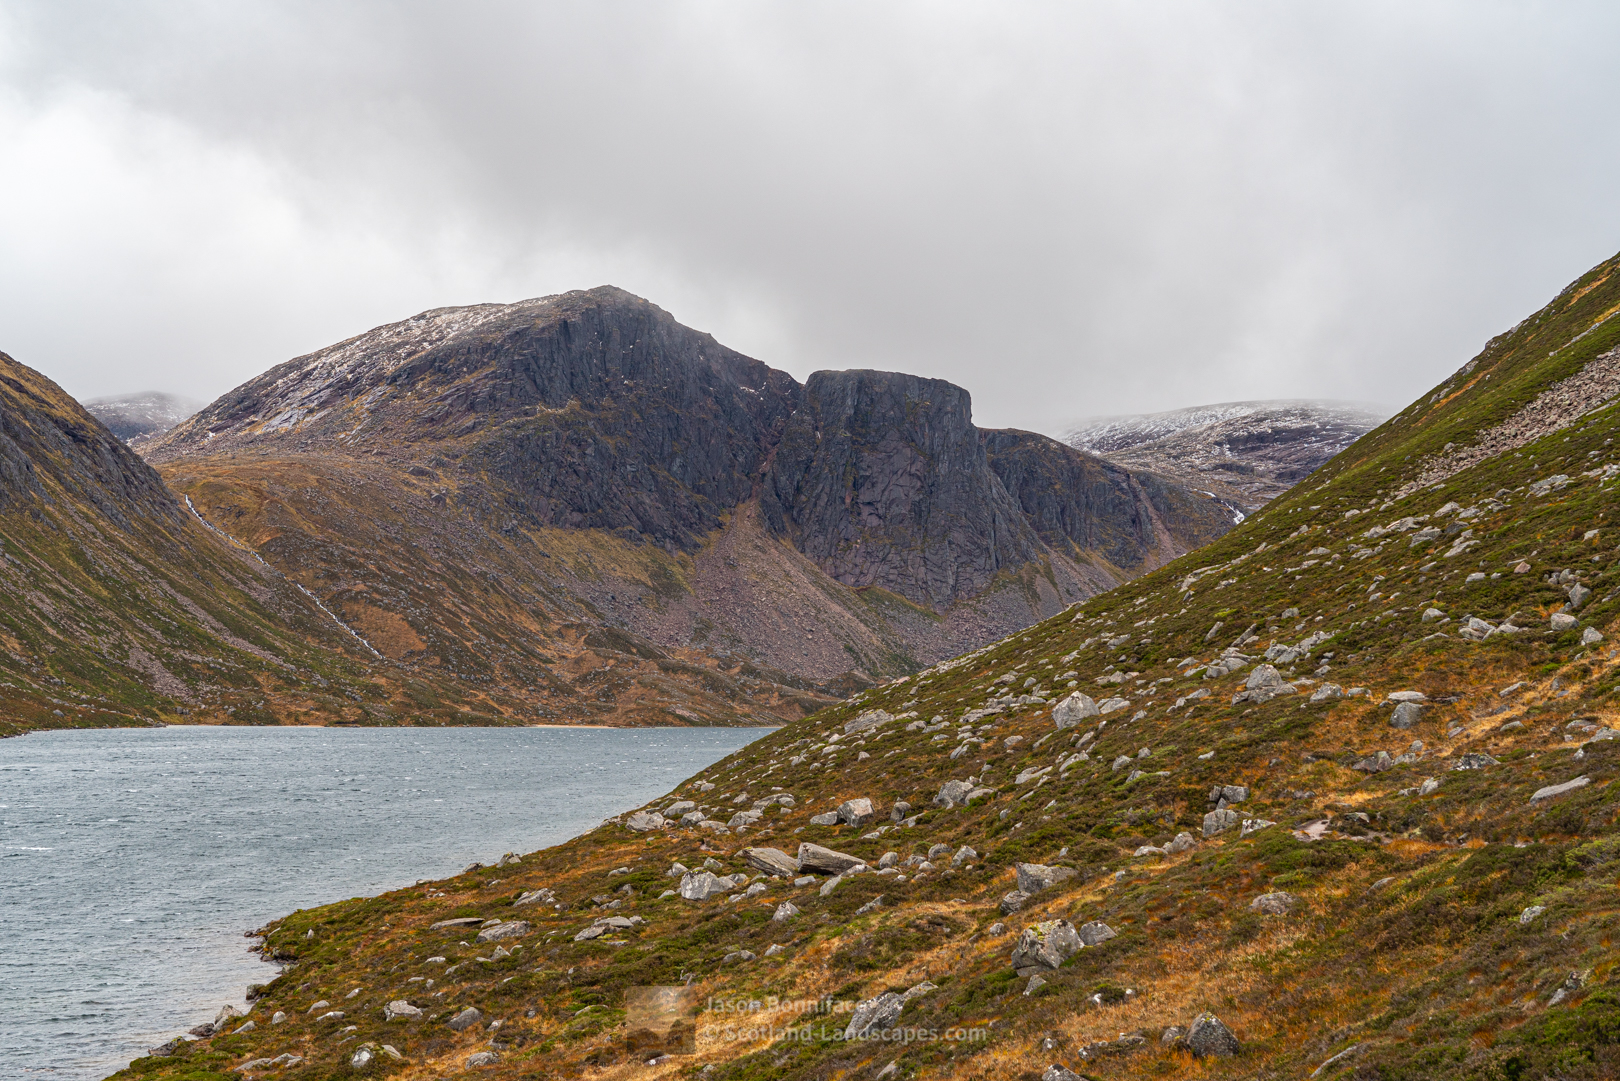 Photo of Carn Etchachan and Shelter Stone Crag from below The Saddle towards the west end of Loch Avon